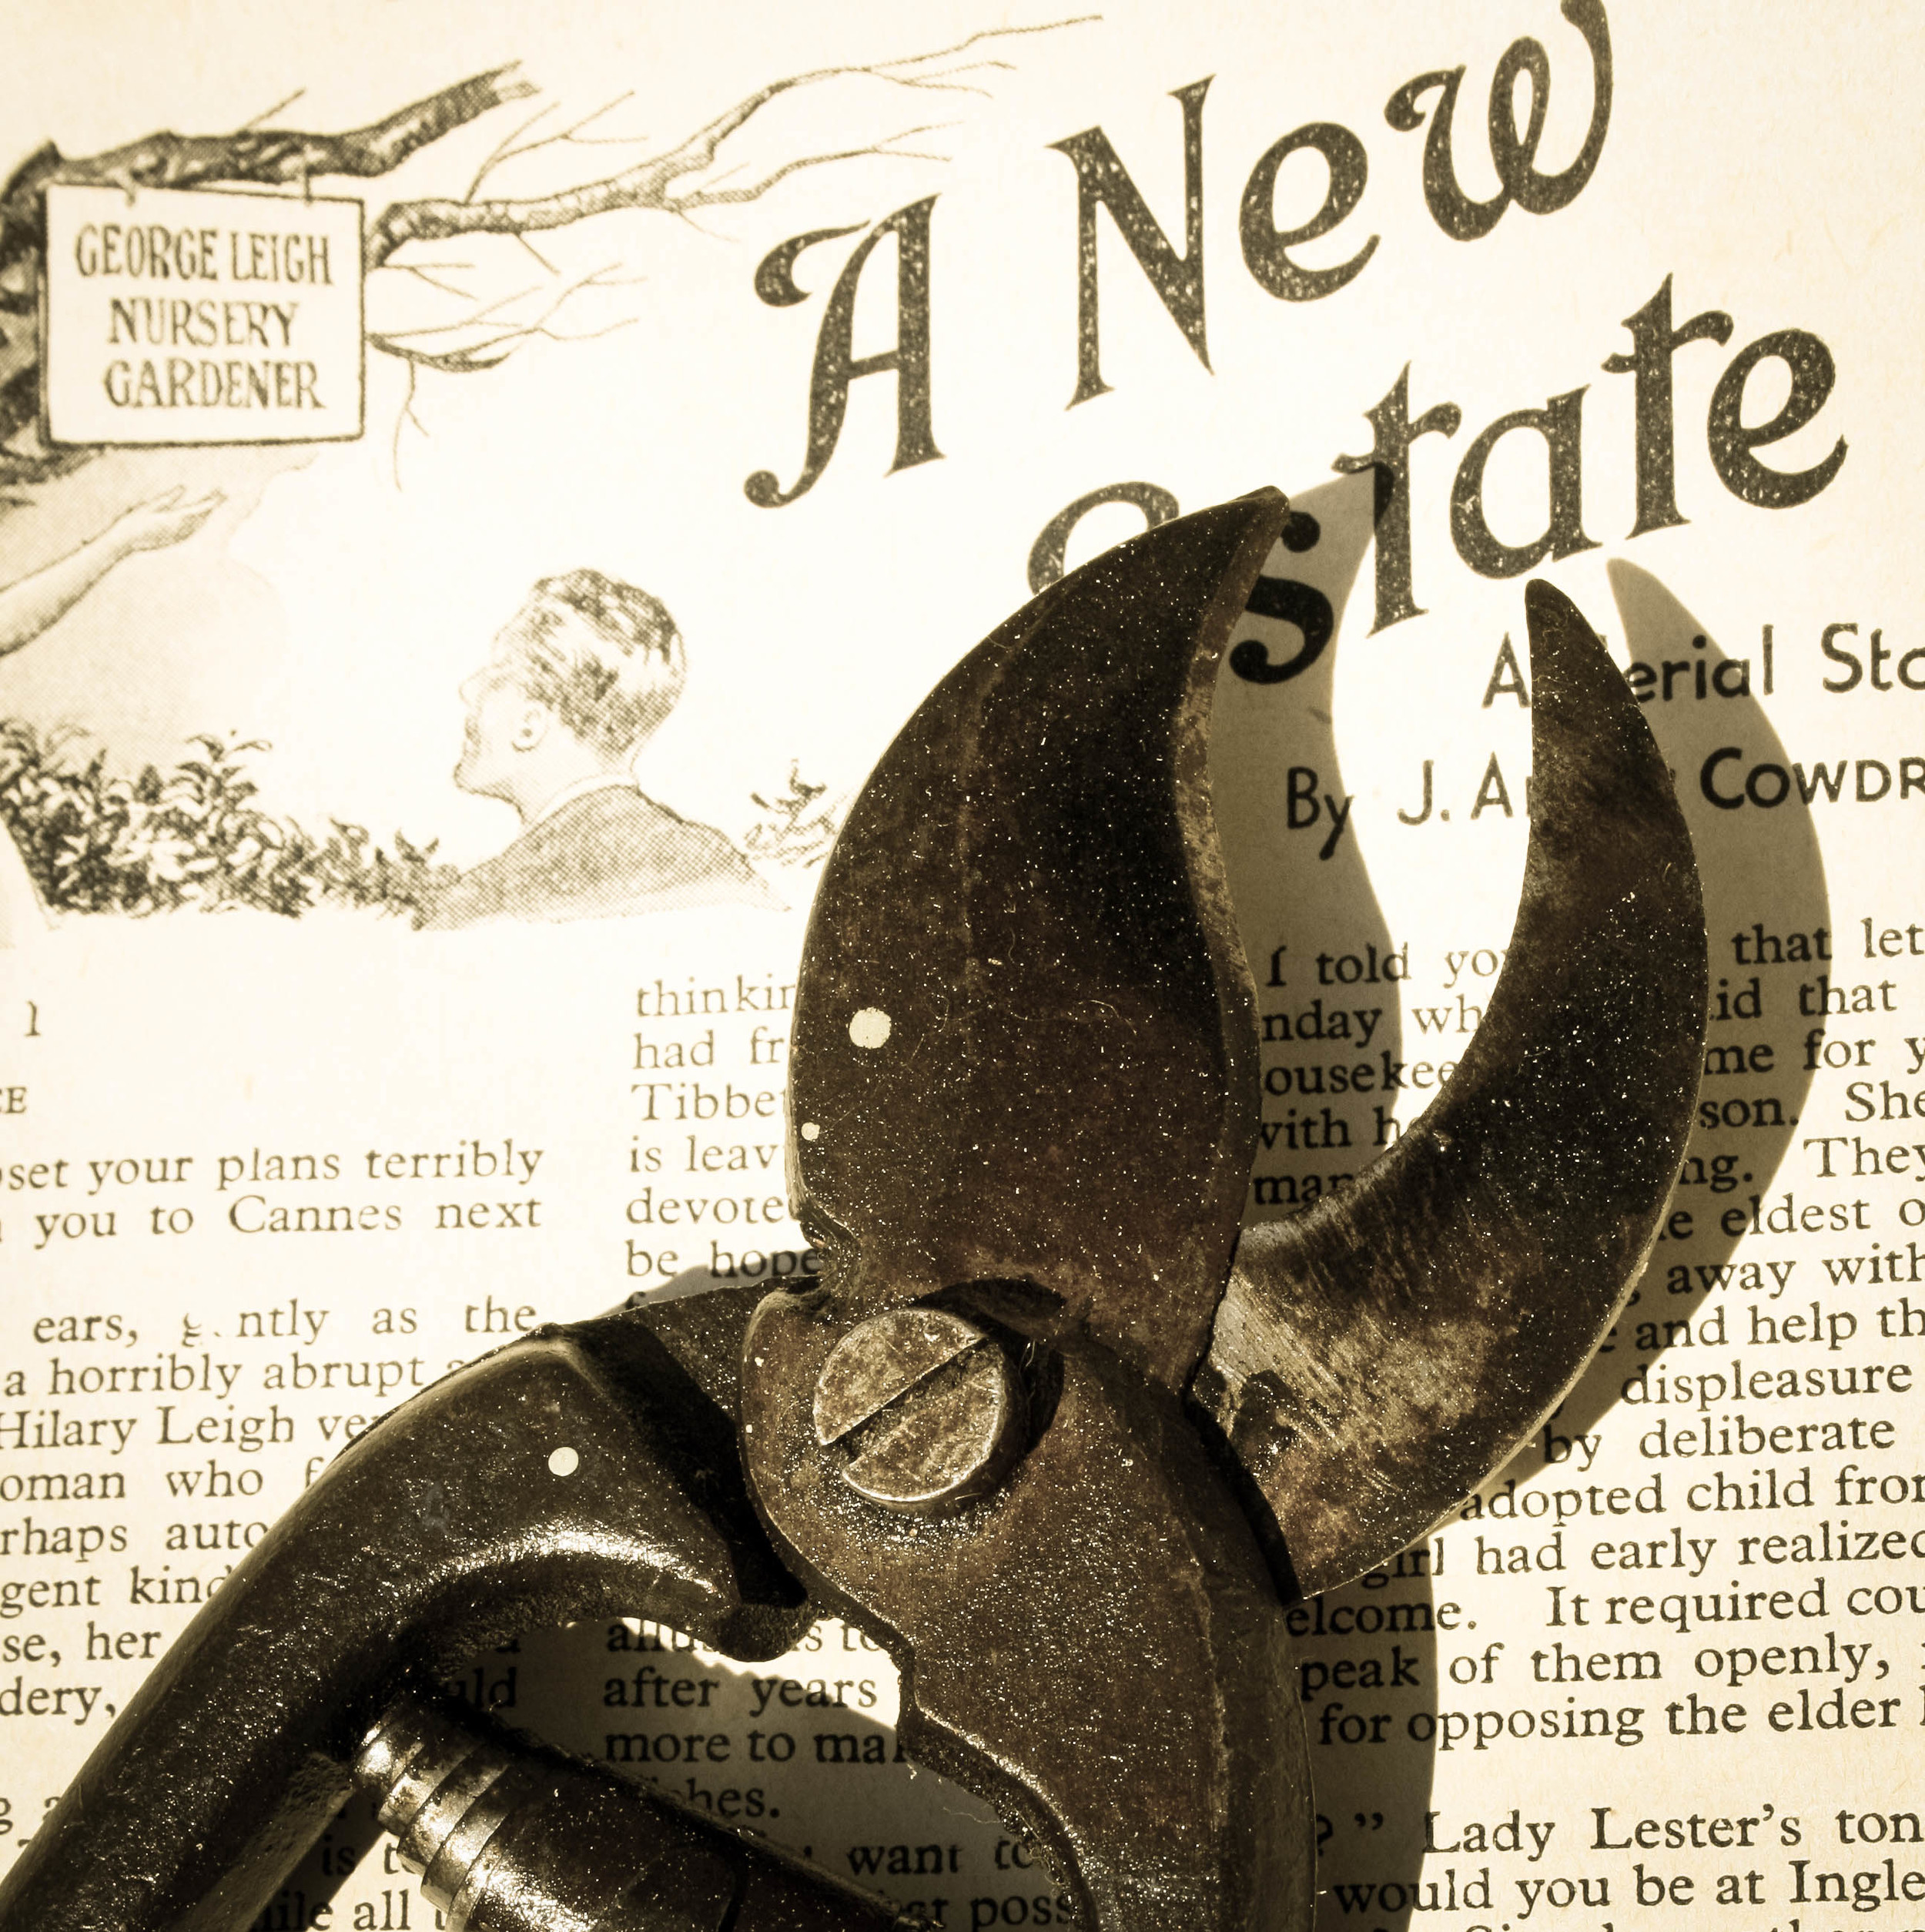 secateurs-2.jpg